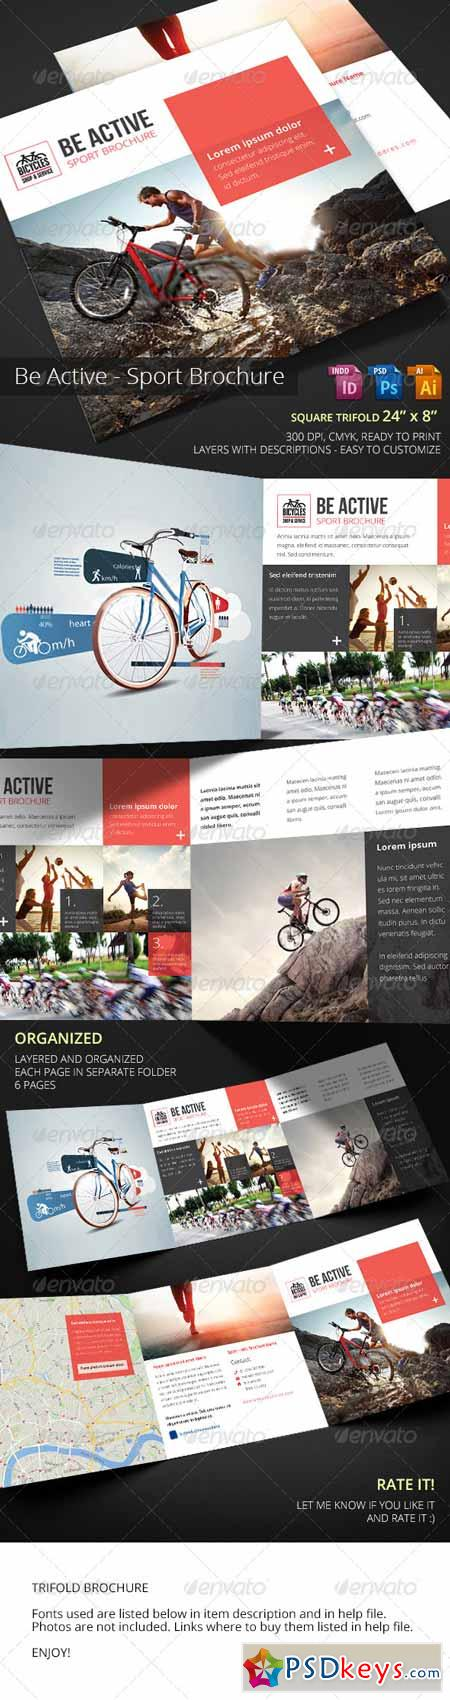 Be Active Bike Sport Square Trifold Brochure 7658861